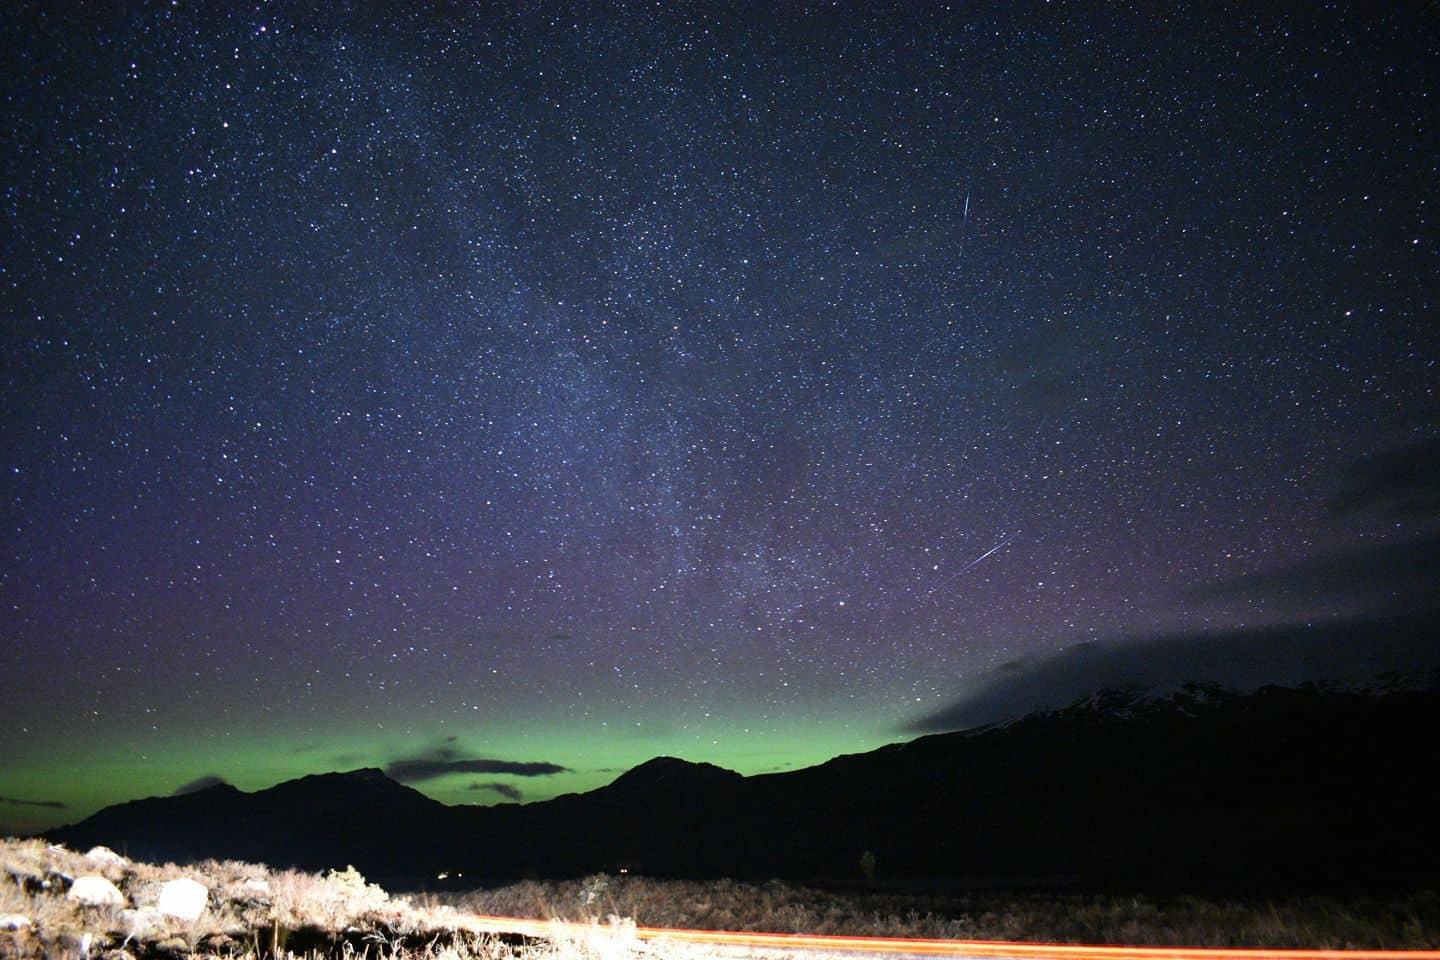 Northern lights taken oven the highlands of Scotland last night. A display which lasted hours although we didn't last for hours. Being half way up a pitch black mountain the nearest street light being 10 miles away the creeps got the better of us and we tucked tail and scampered home